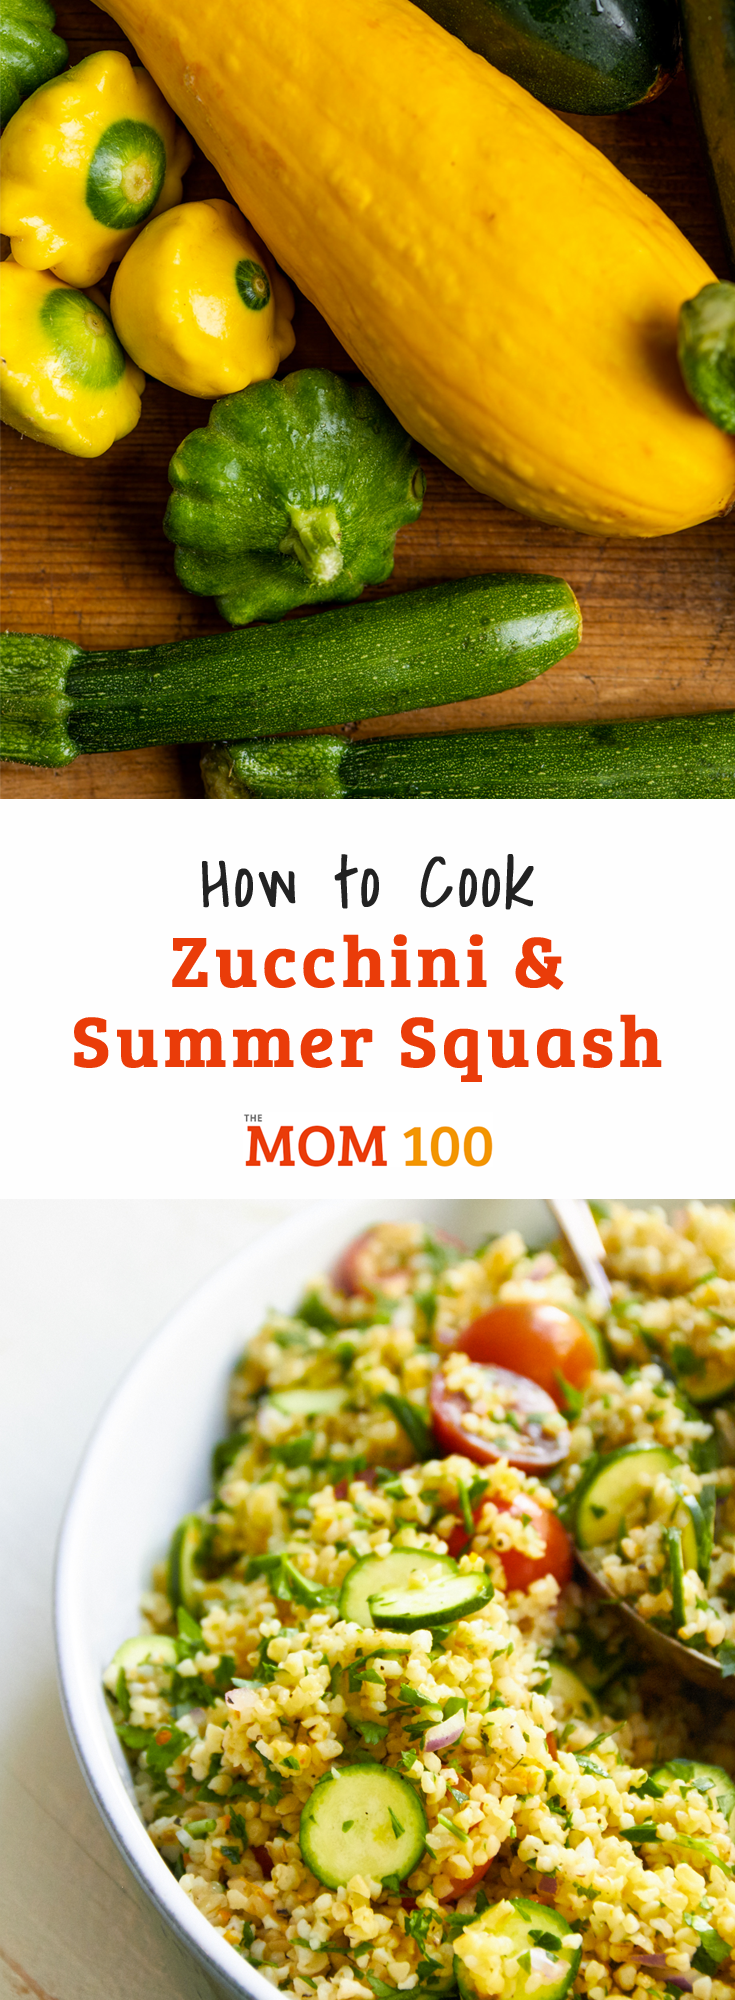 How to Cook Summer Squash and Zucchini: Do you have questions about how to buy, store, and prepare zucchini and summer squash?  We\'ve got answers!